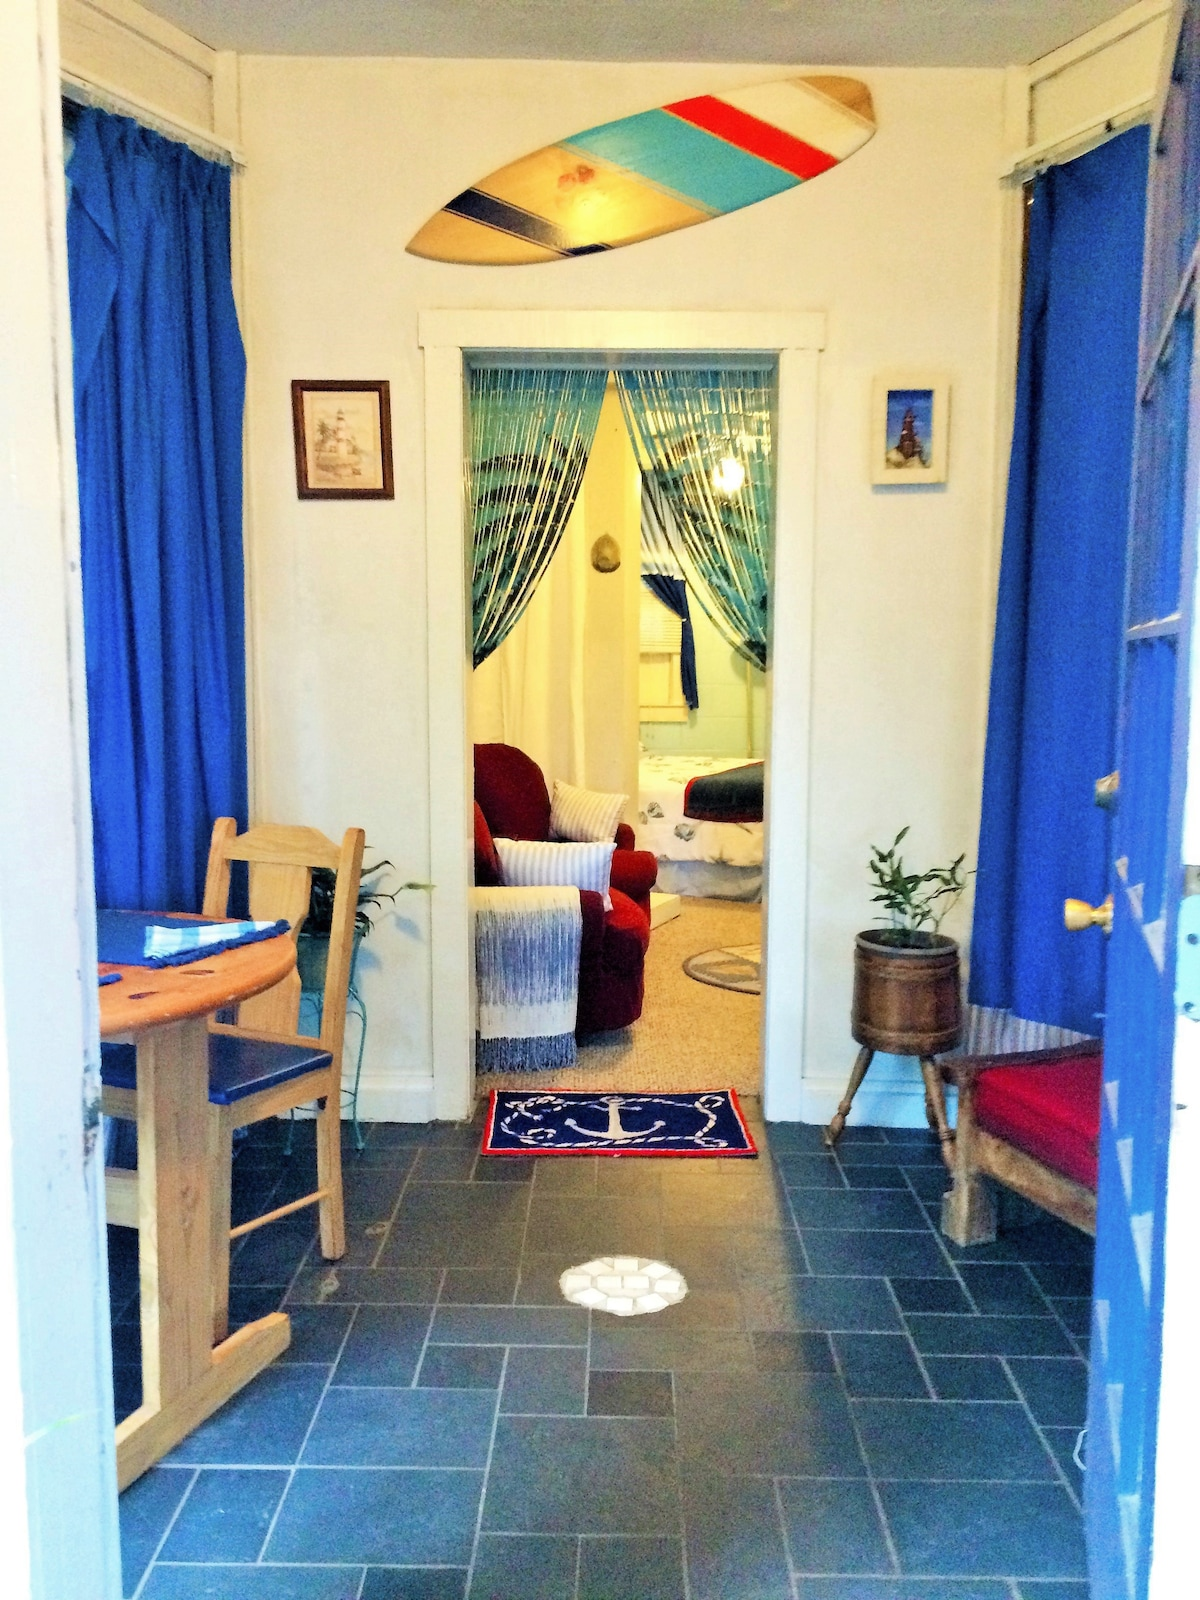 Solarium entrance, dining table and entrance to living room.